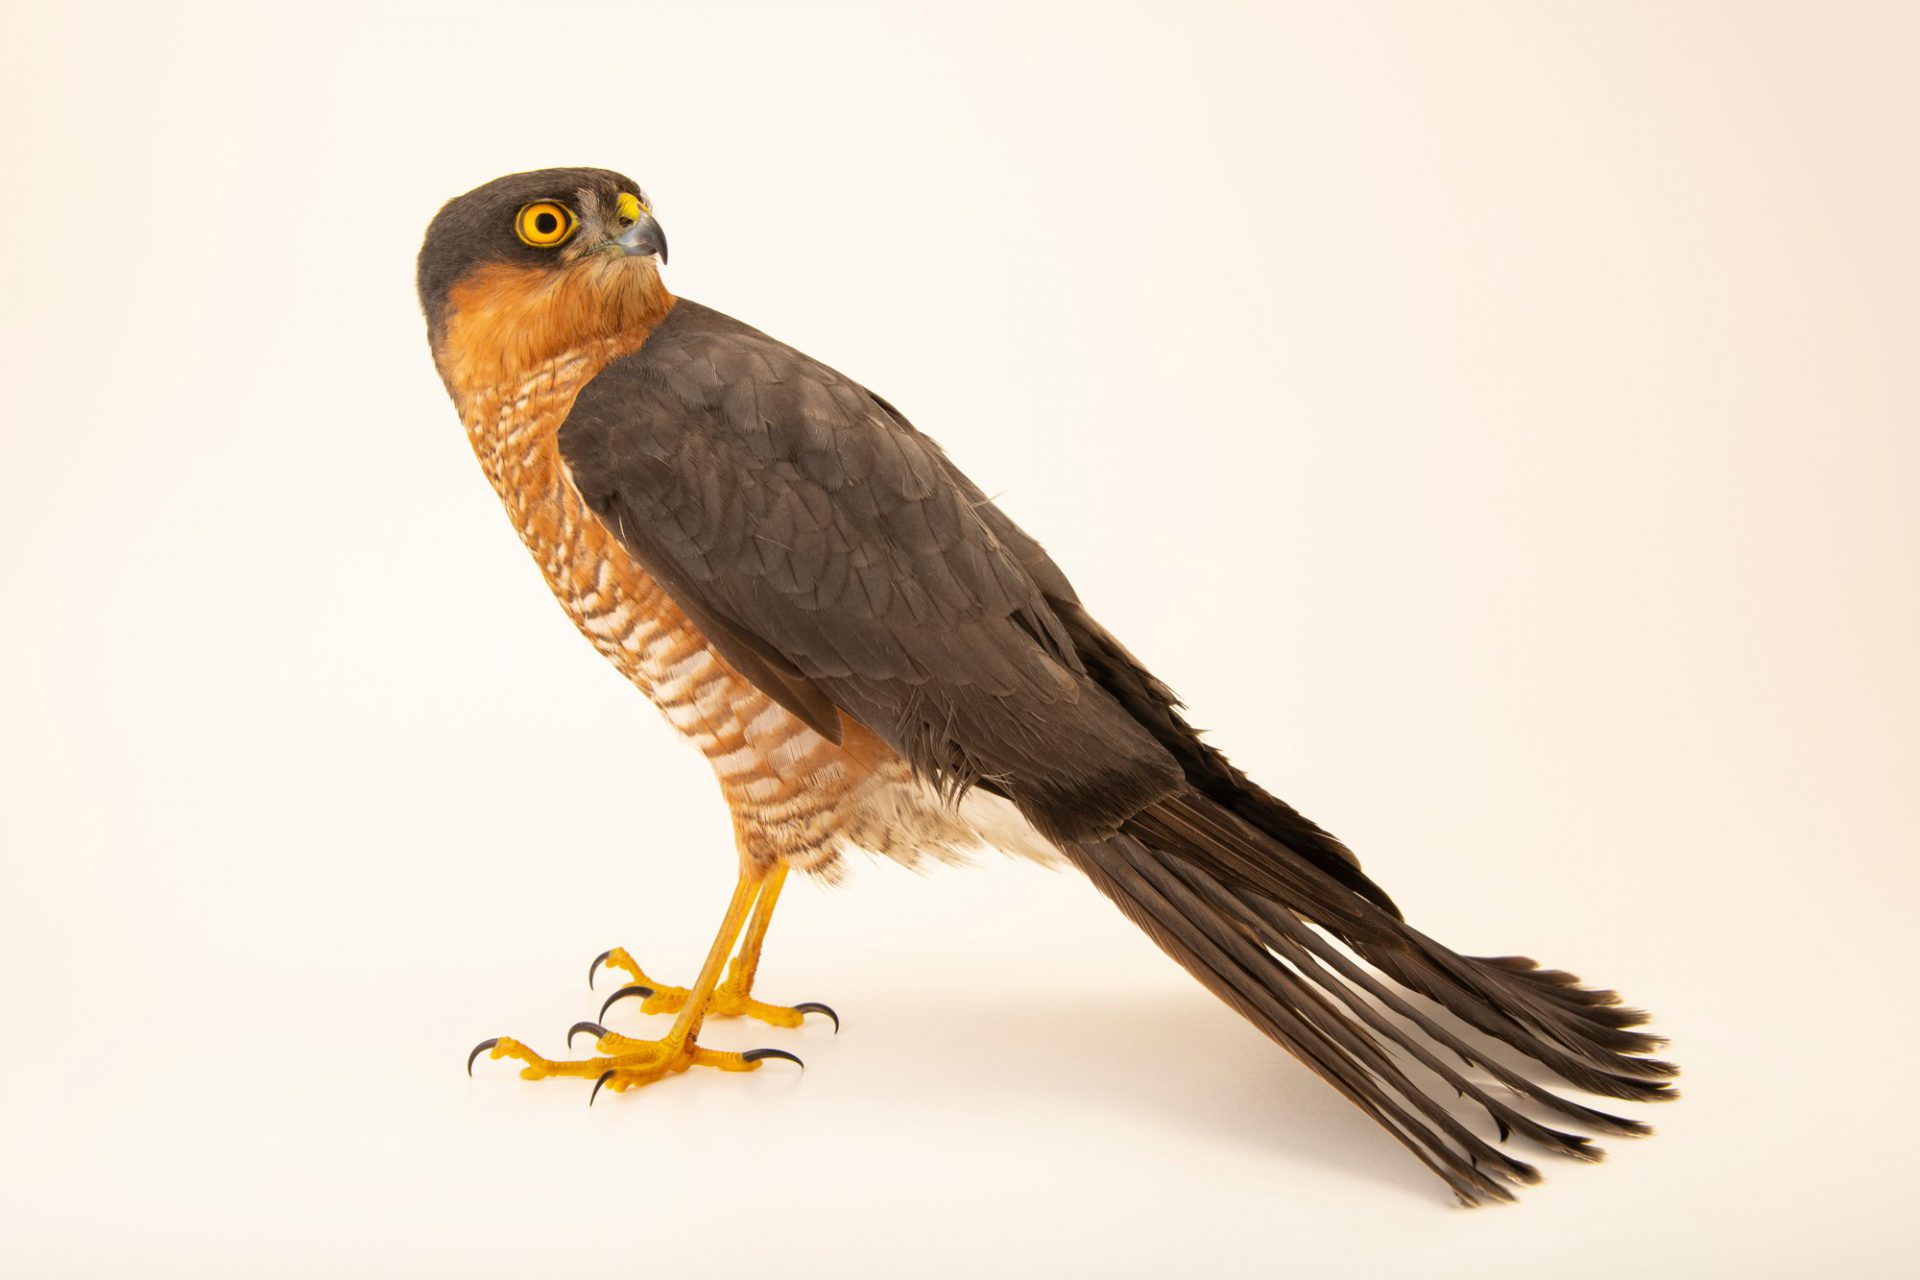 Photo: A Eurasian sparrowhawk (Accipiter nisus nisus) at Parque Biologico.